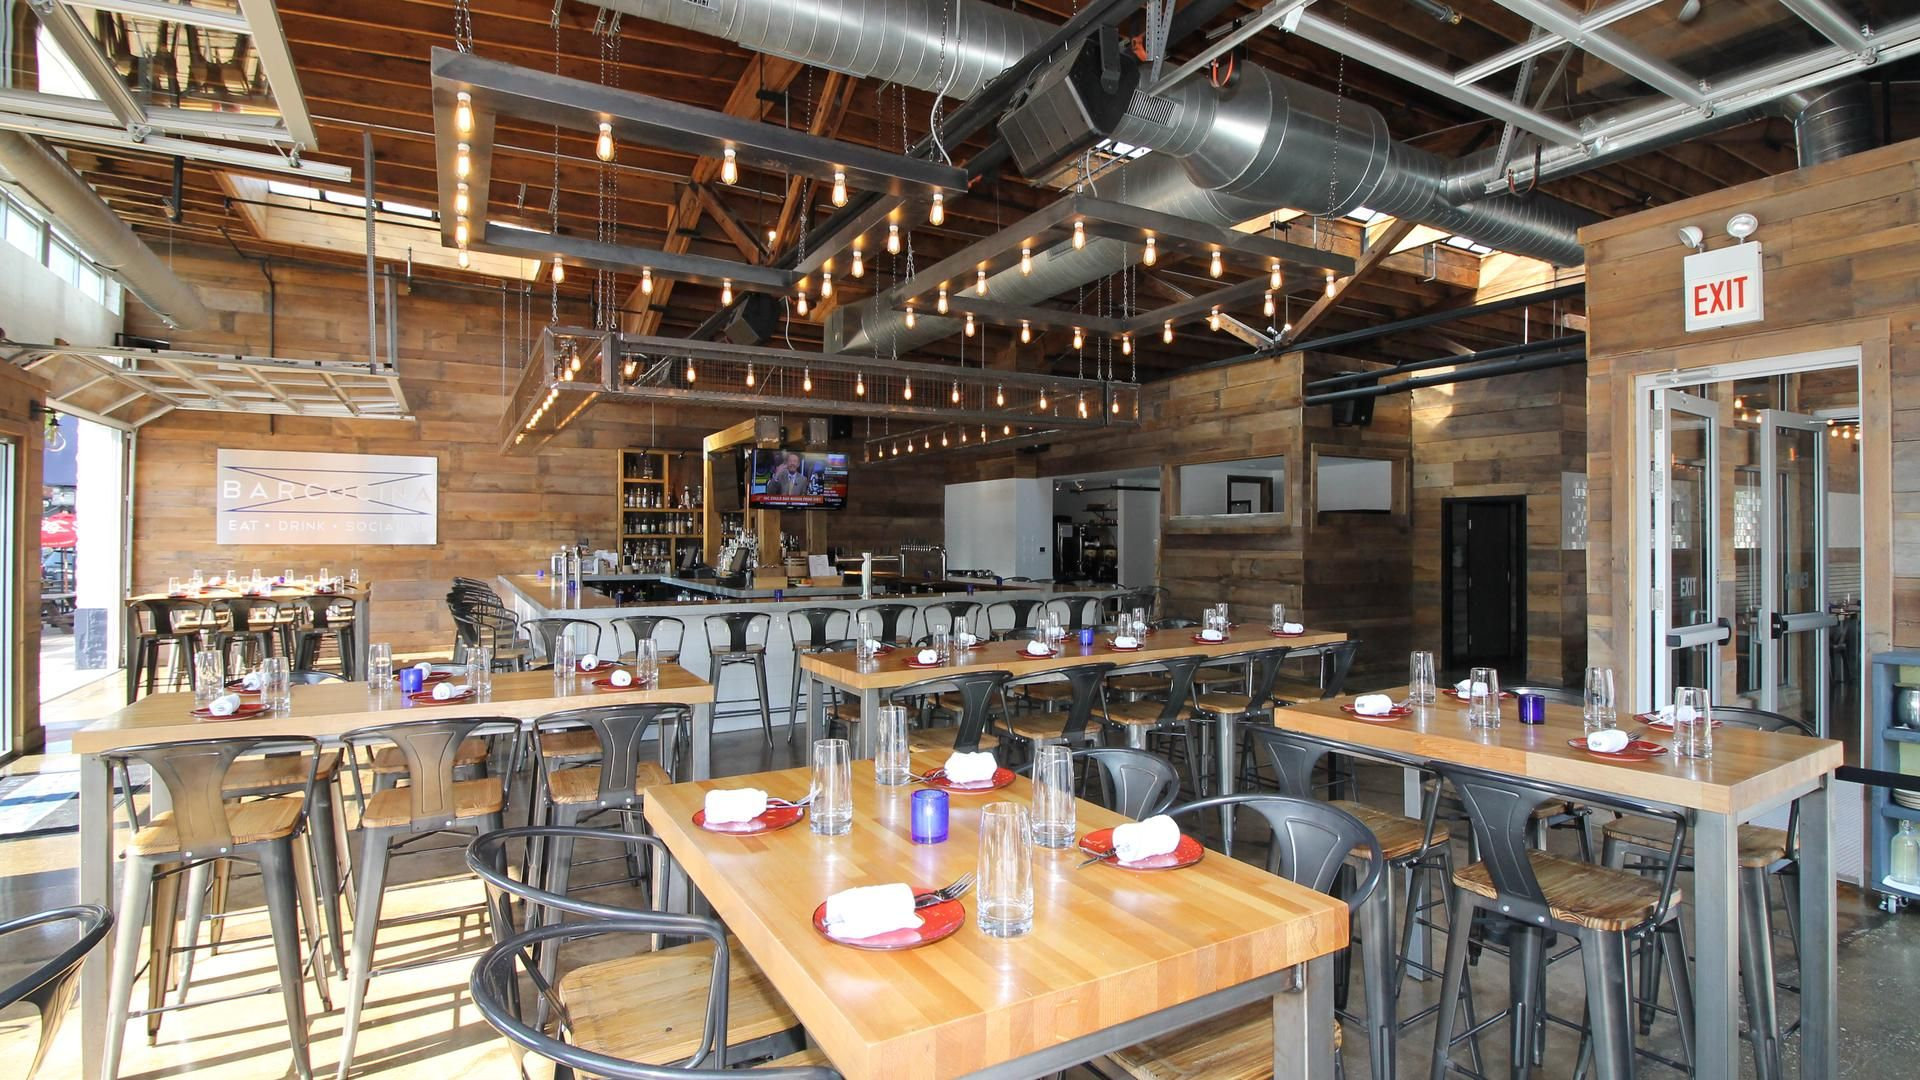 Restaurant In Chicago Illinois Barcocina Fuses Traditional Mexican